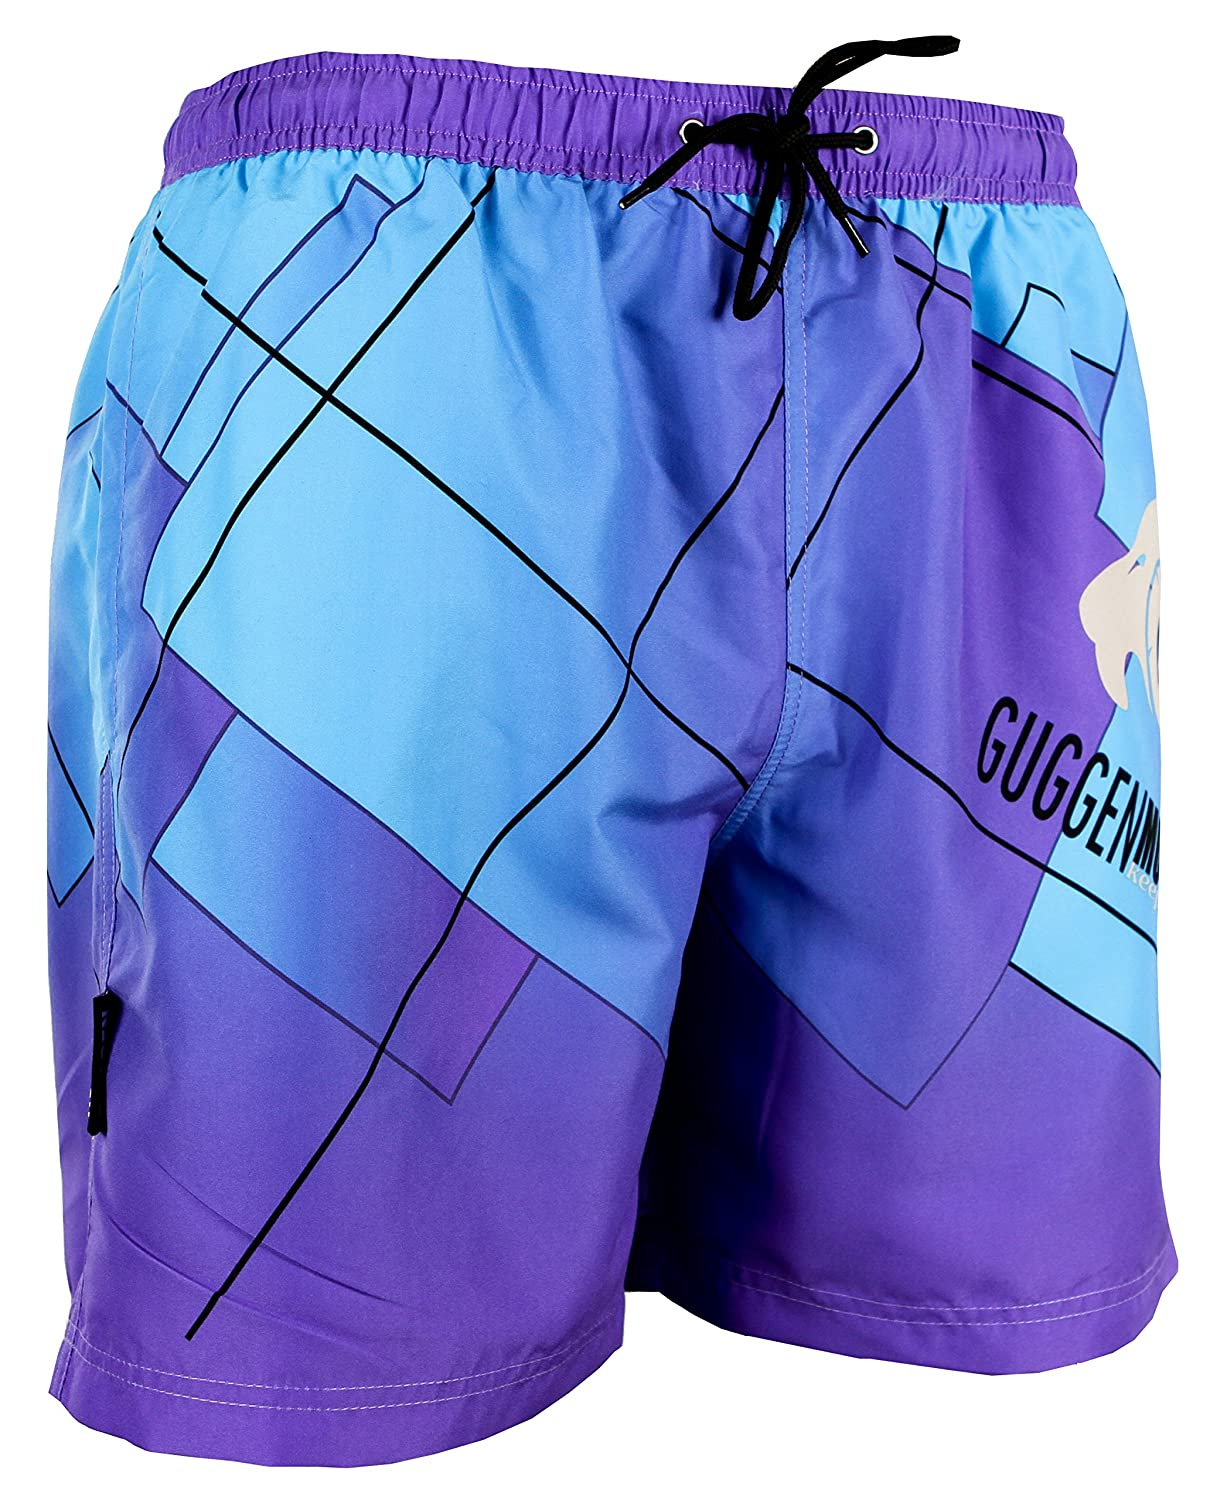 GUGGEN MOUNTAIN Men's swimming trunks out of High-Tec Material swim shorts bathing drawers bathers slip purple blue *High Quality Print*